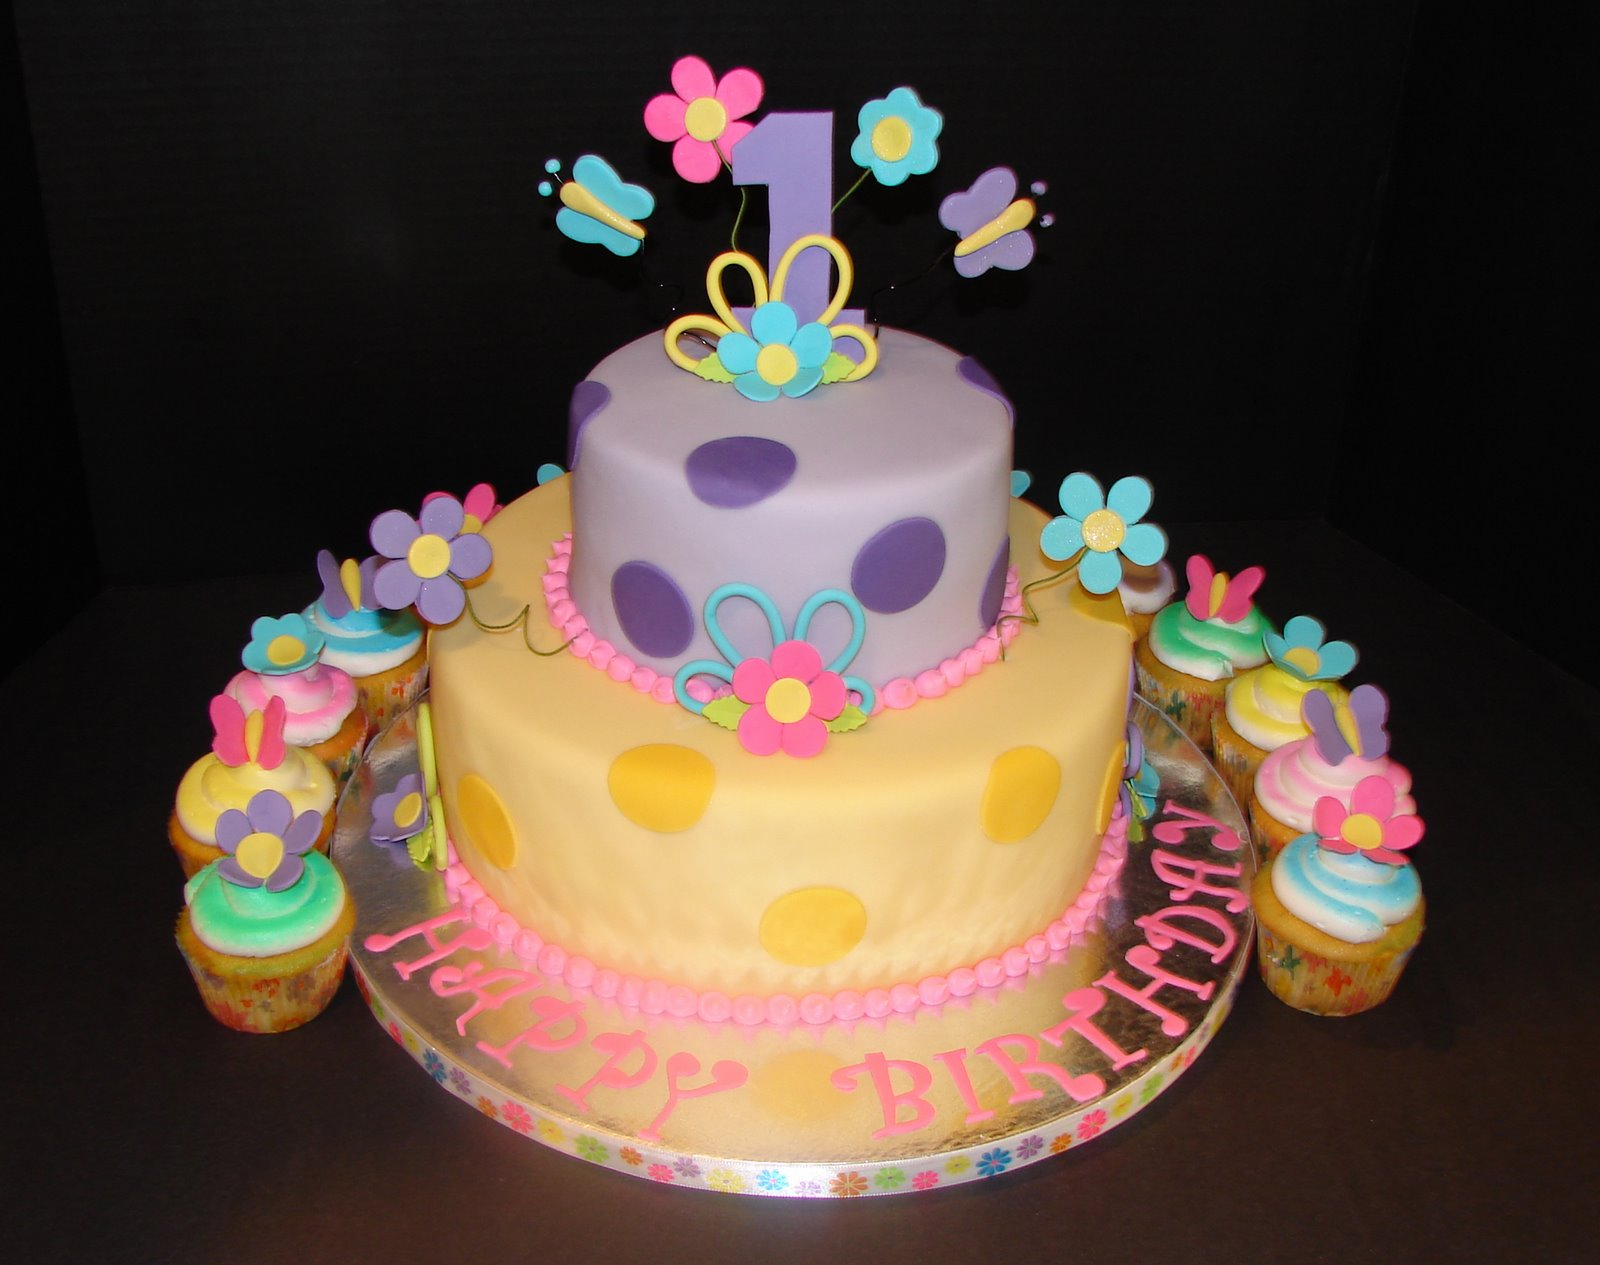 Cake Designs First Birthday : Birthday Cake Images for Girls Clip Art Pictures Pics with ...